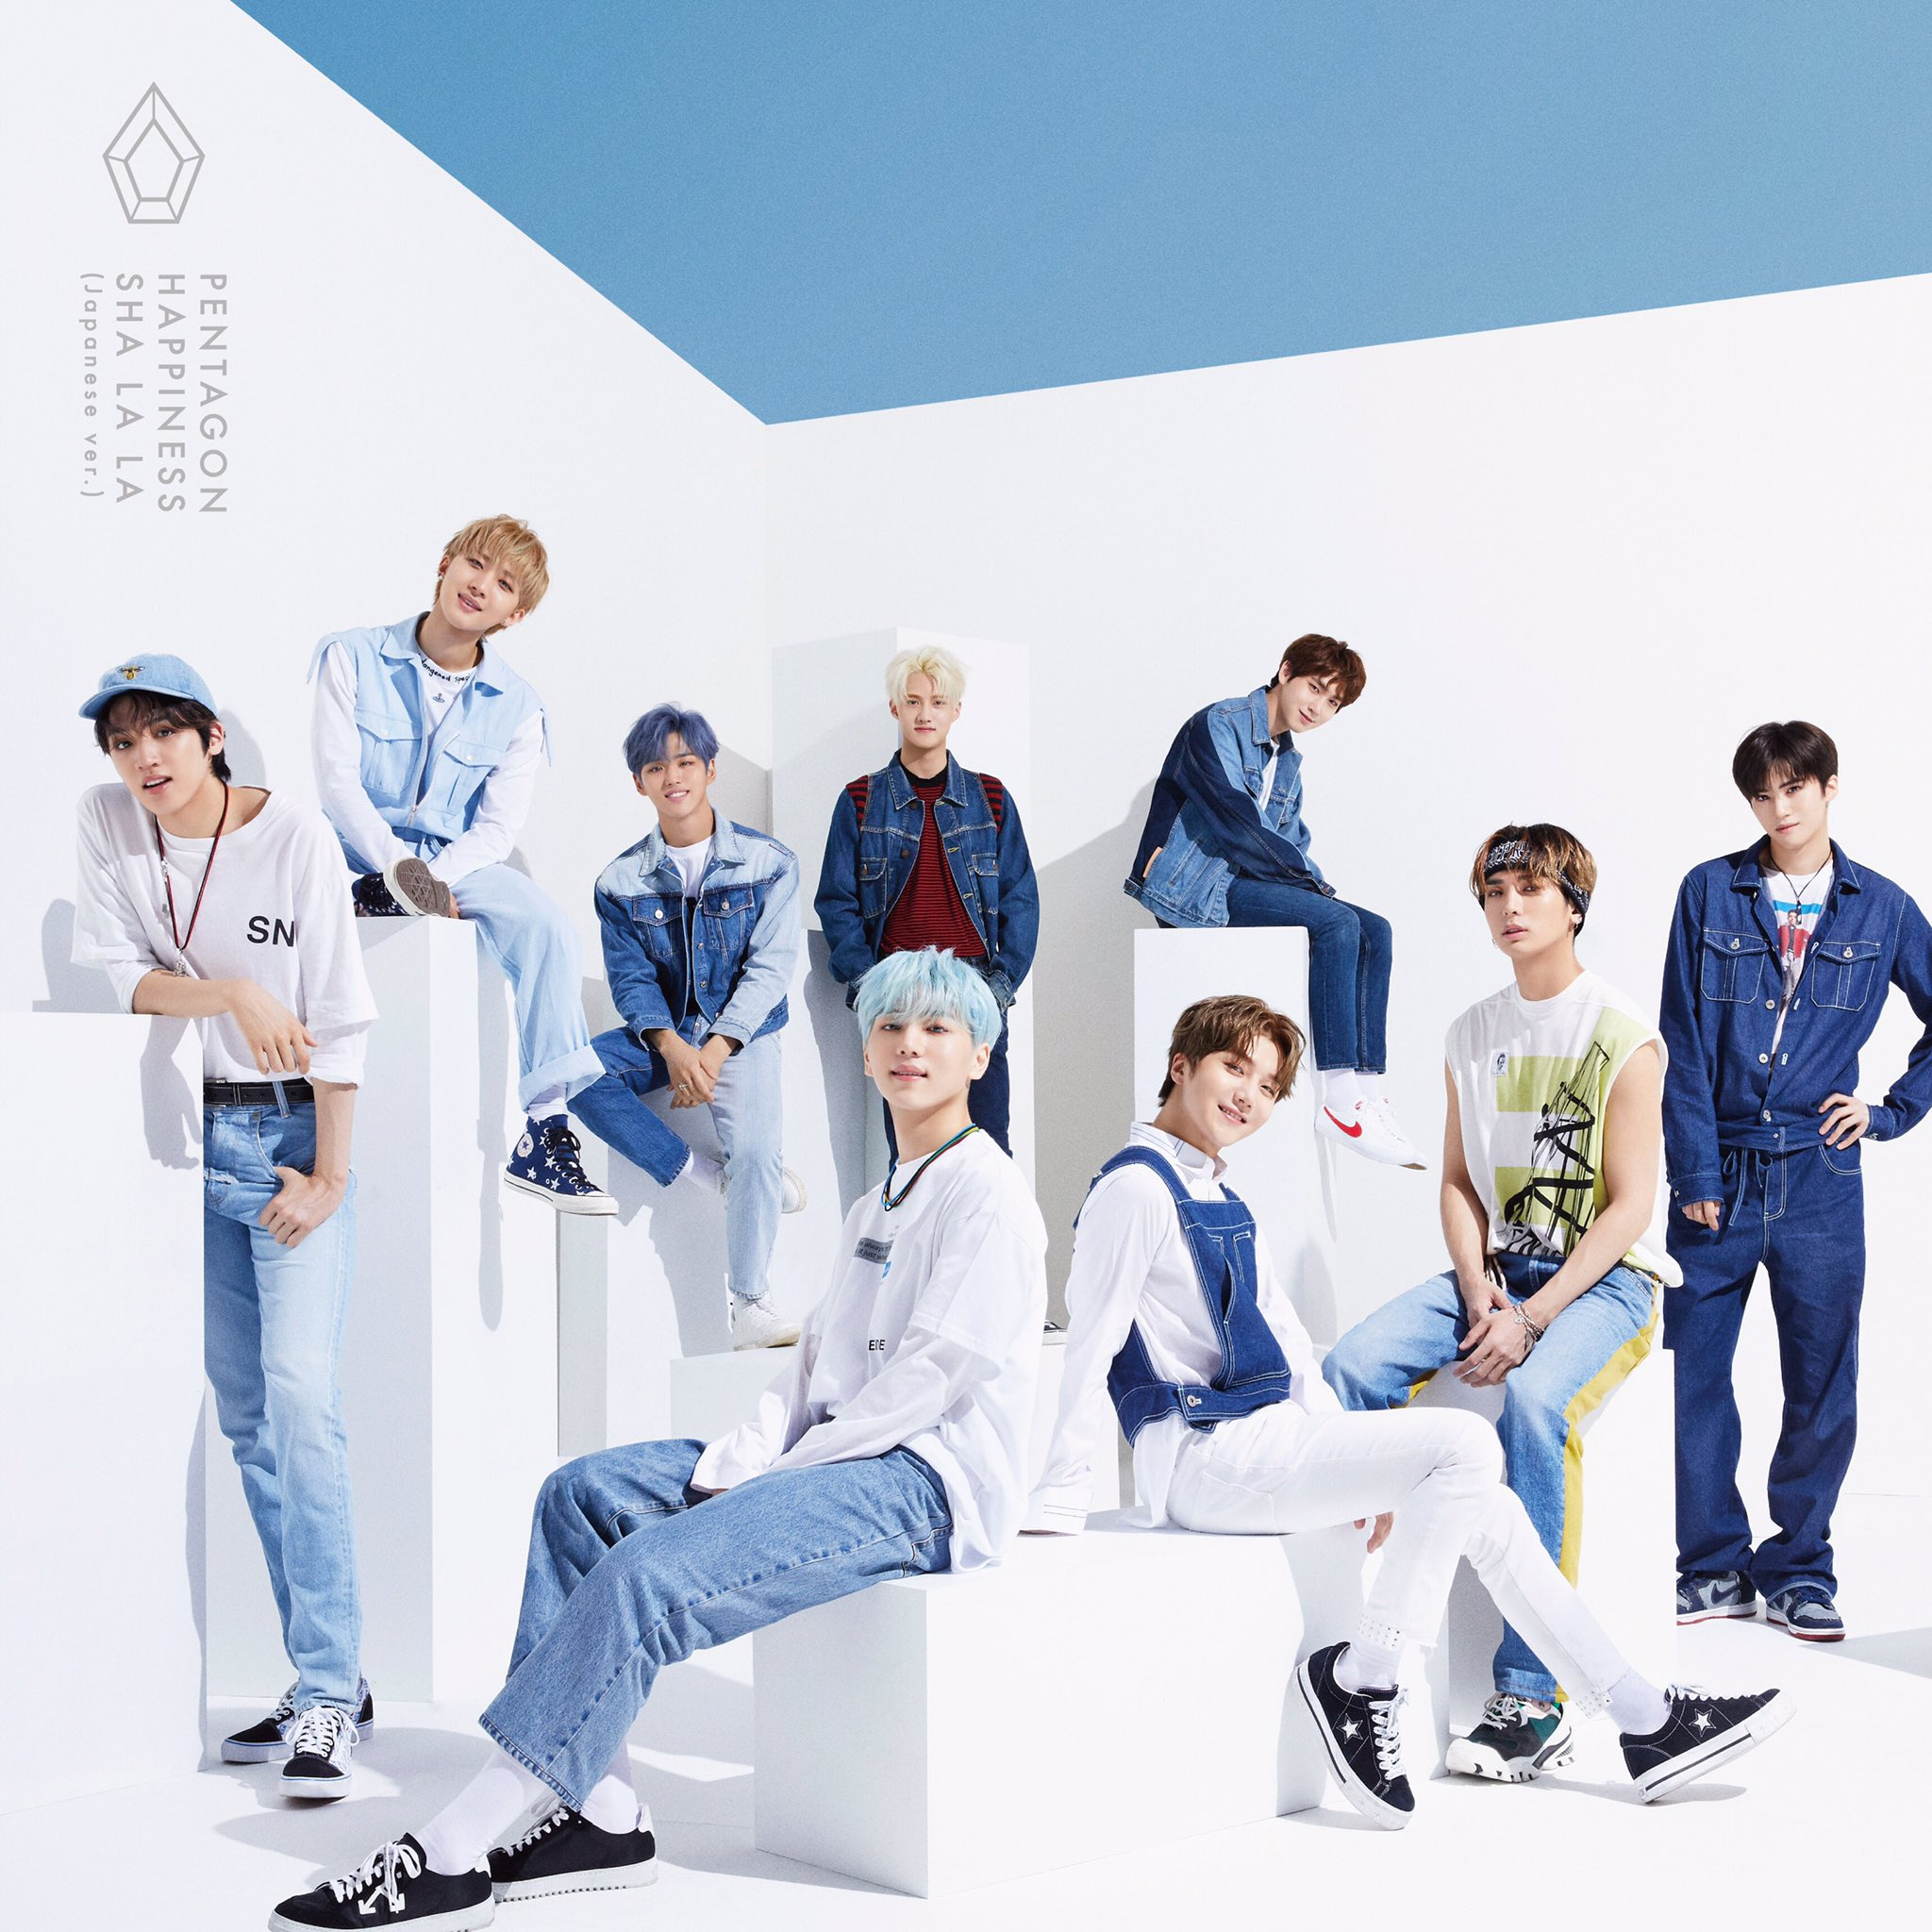 PENTAGON 「HAPPINESS / SHA LA LA」